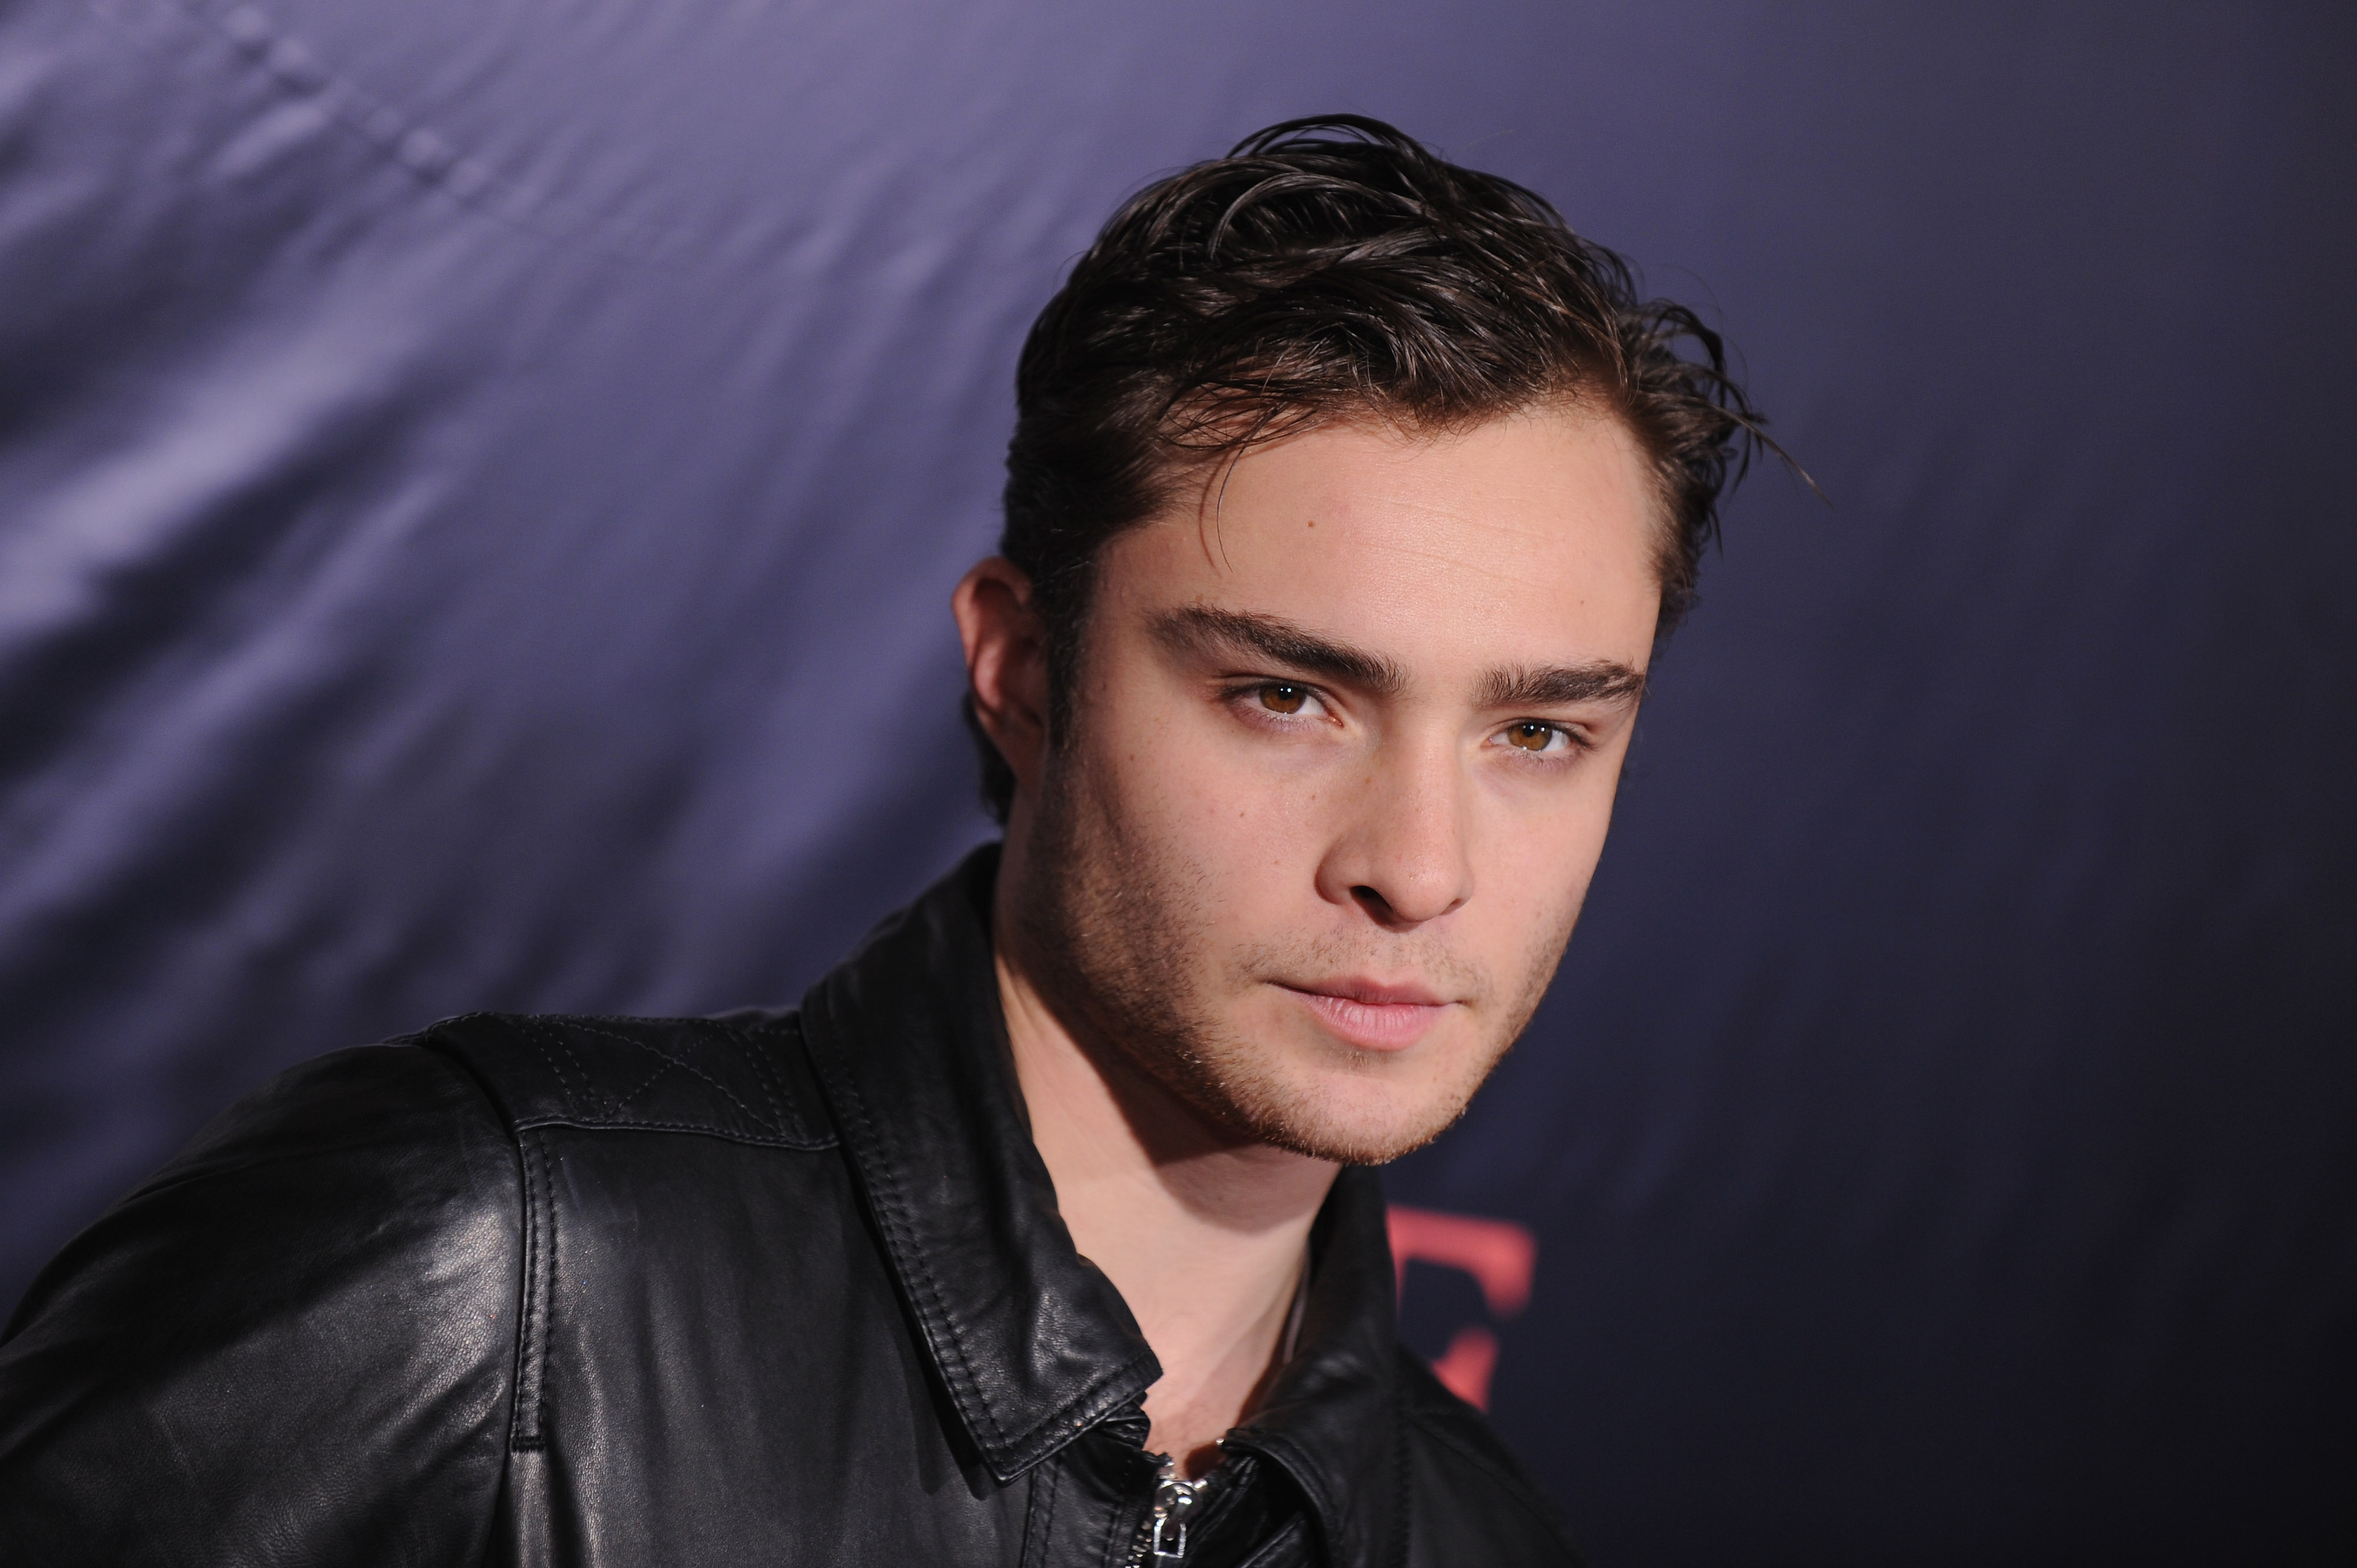 Ed Westwick accused of sexual assault by third woman - NY